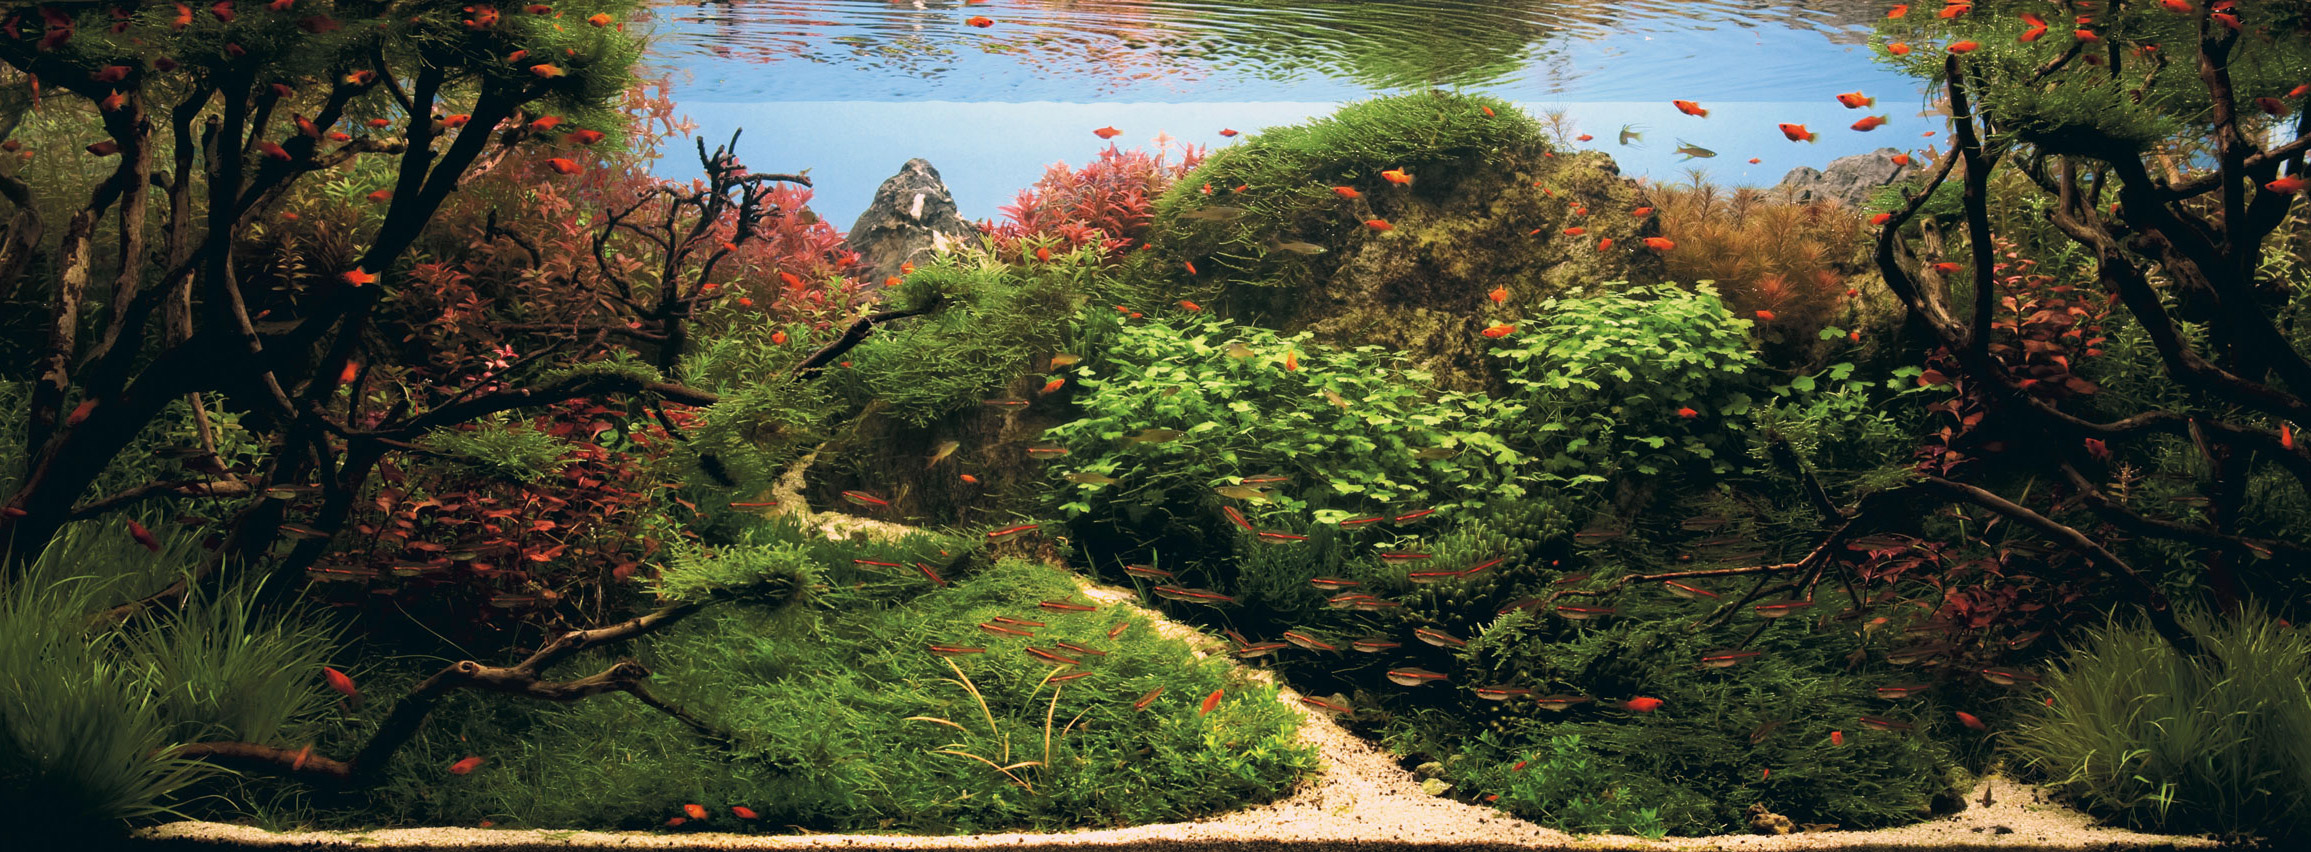 aquascaping-01